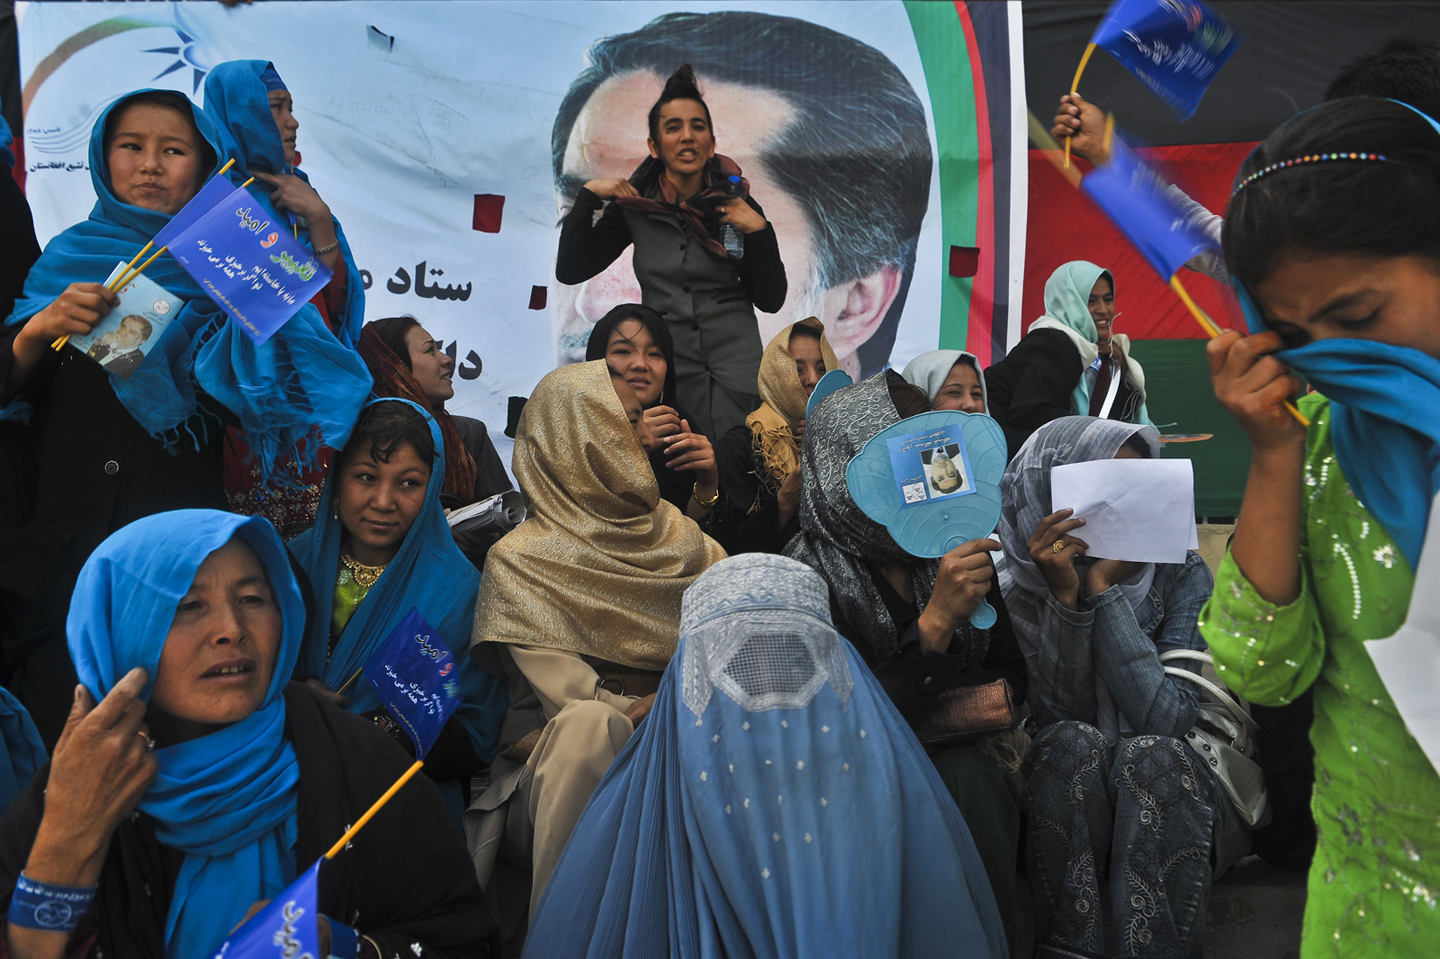 Presidential Dr. Abdullah Abdullah is surrounded by supporters at a rally in Kabul, Afghanistan, August 3, 2009.  The elders came to Dr. Abdullah to announce their support of his campaign for Presidency. As Afghans gear up to vote in presidential elections slated for August 20, the candidates are on the campaign trail.